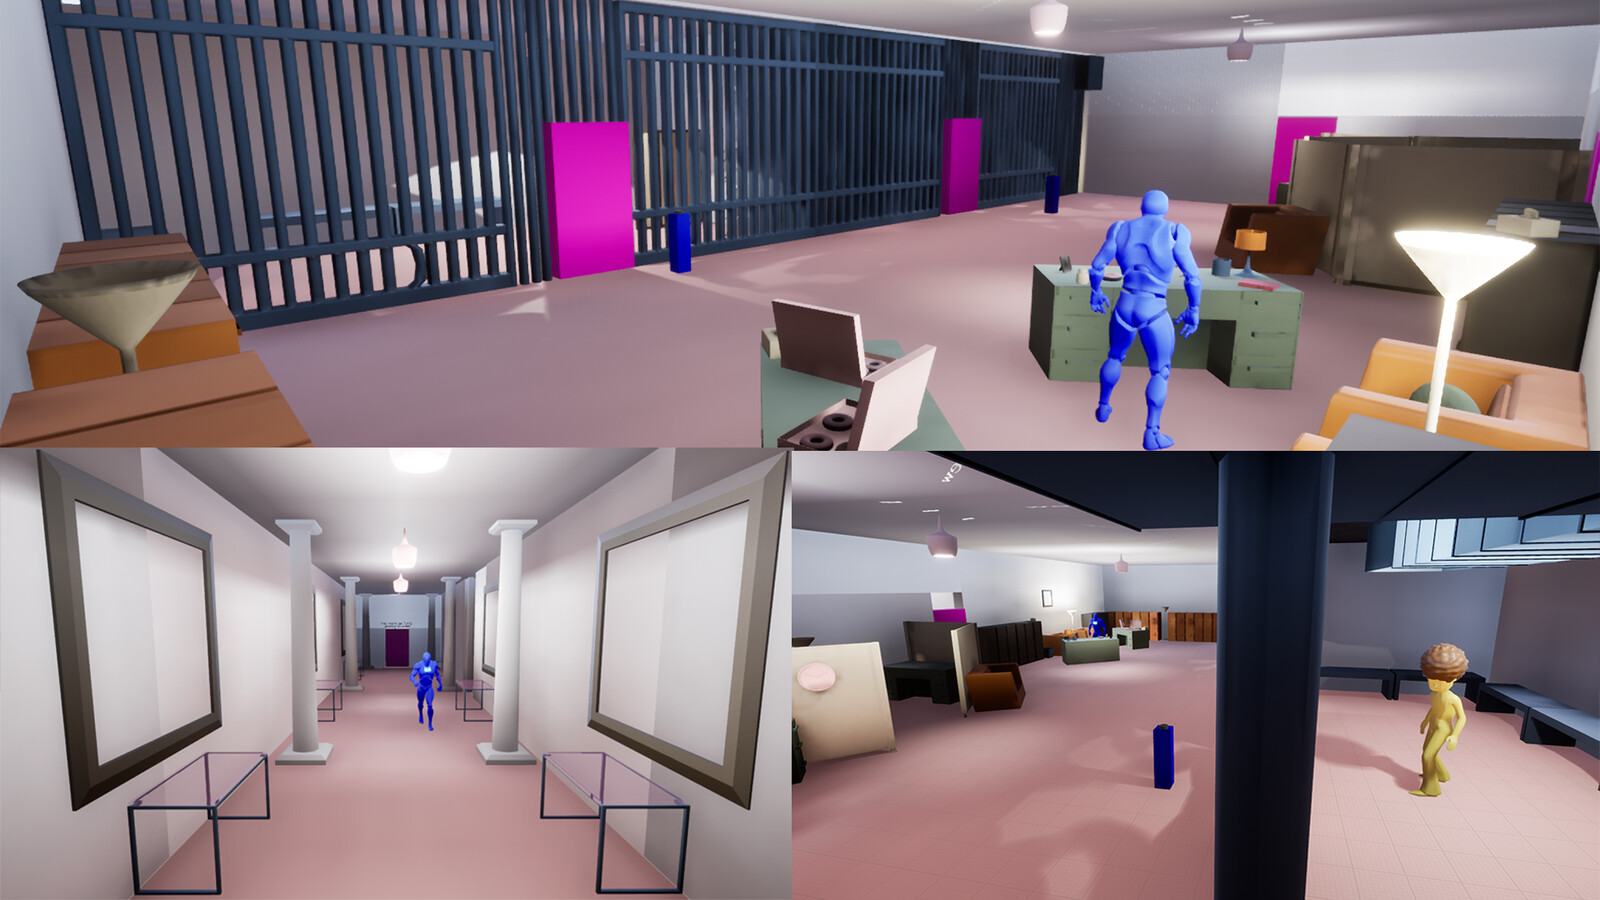 Some shots of jail cell level.